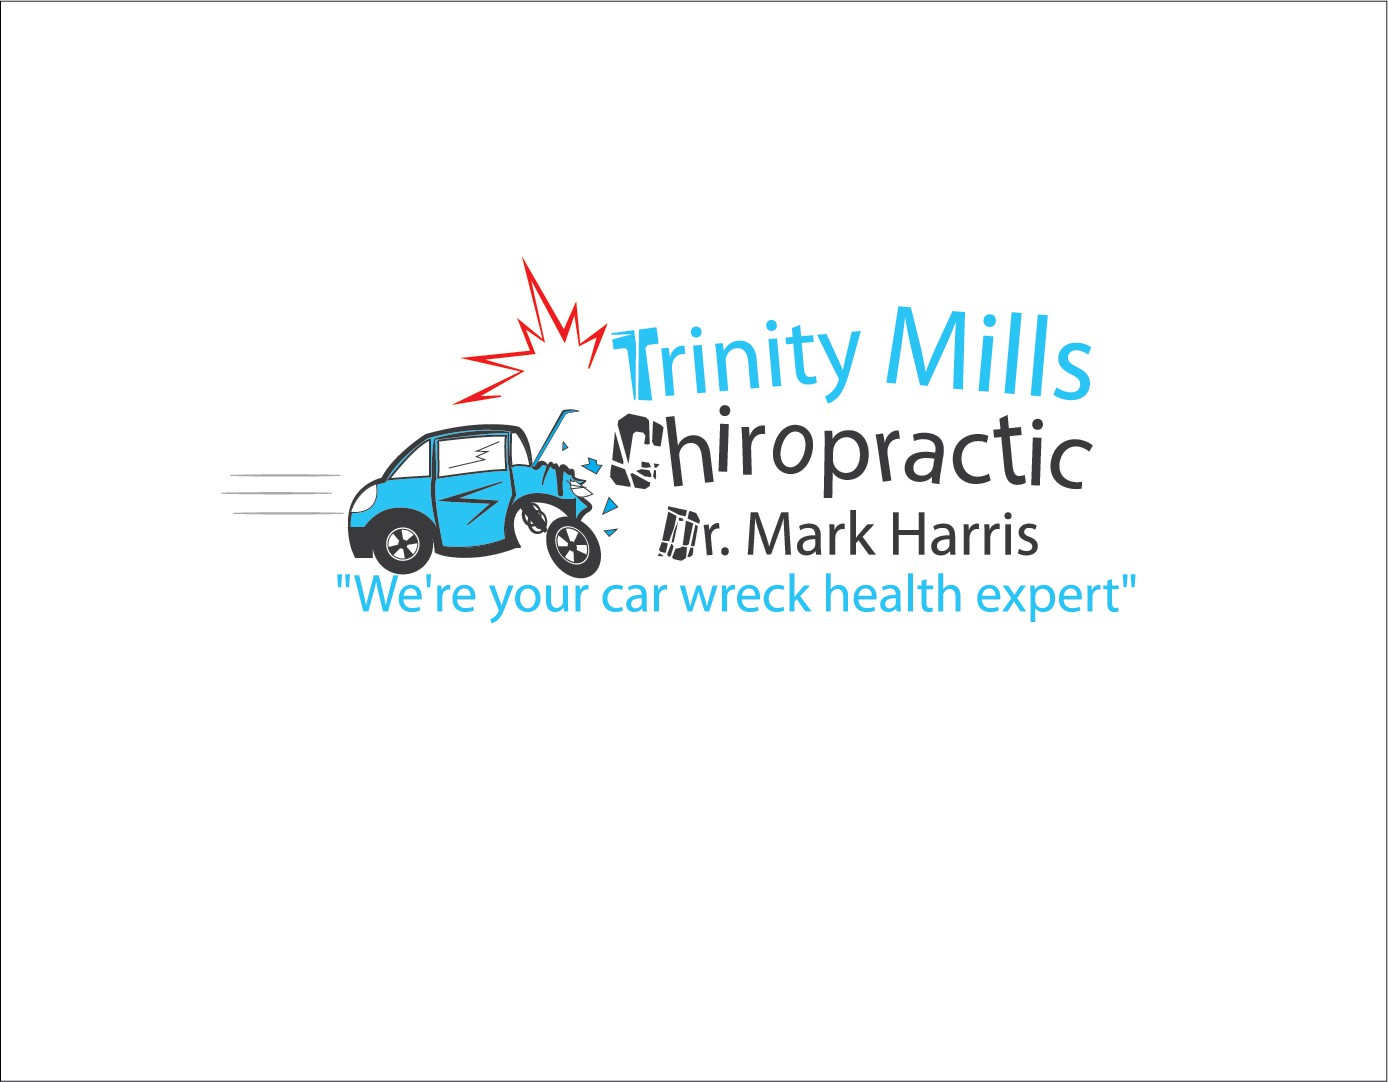 Help Trinity Mills Chiropractic / Dr. Mark Harris with a new logo